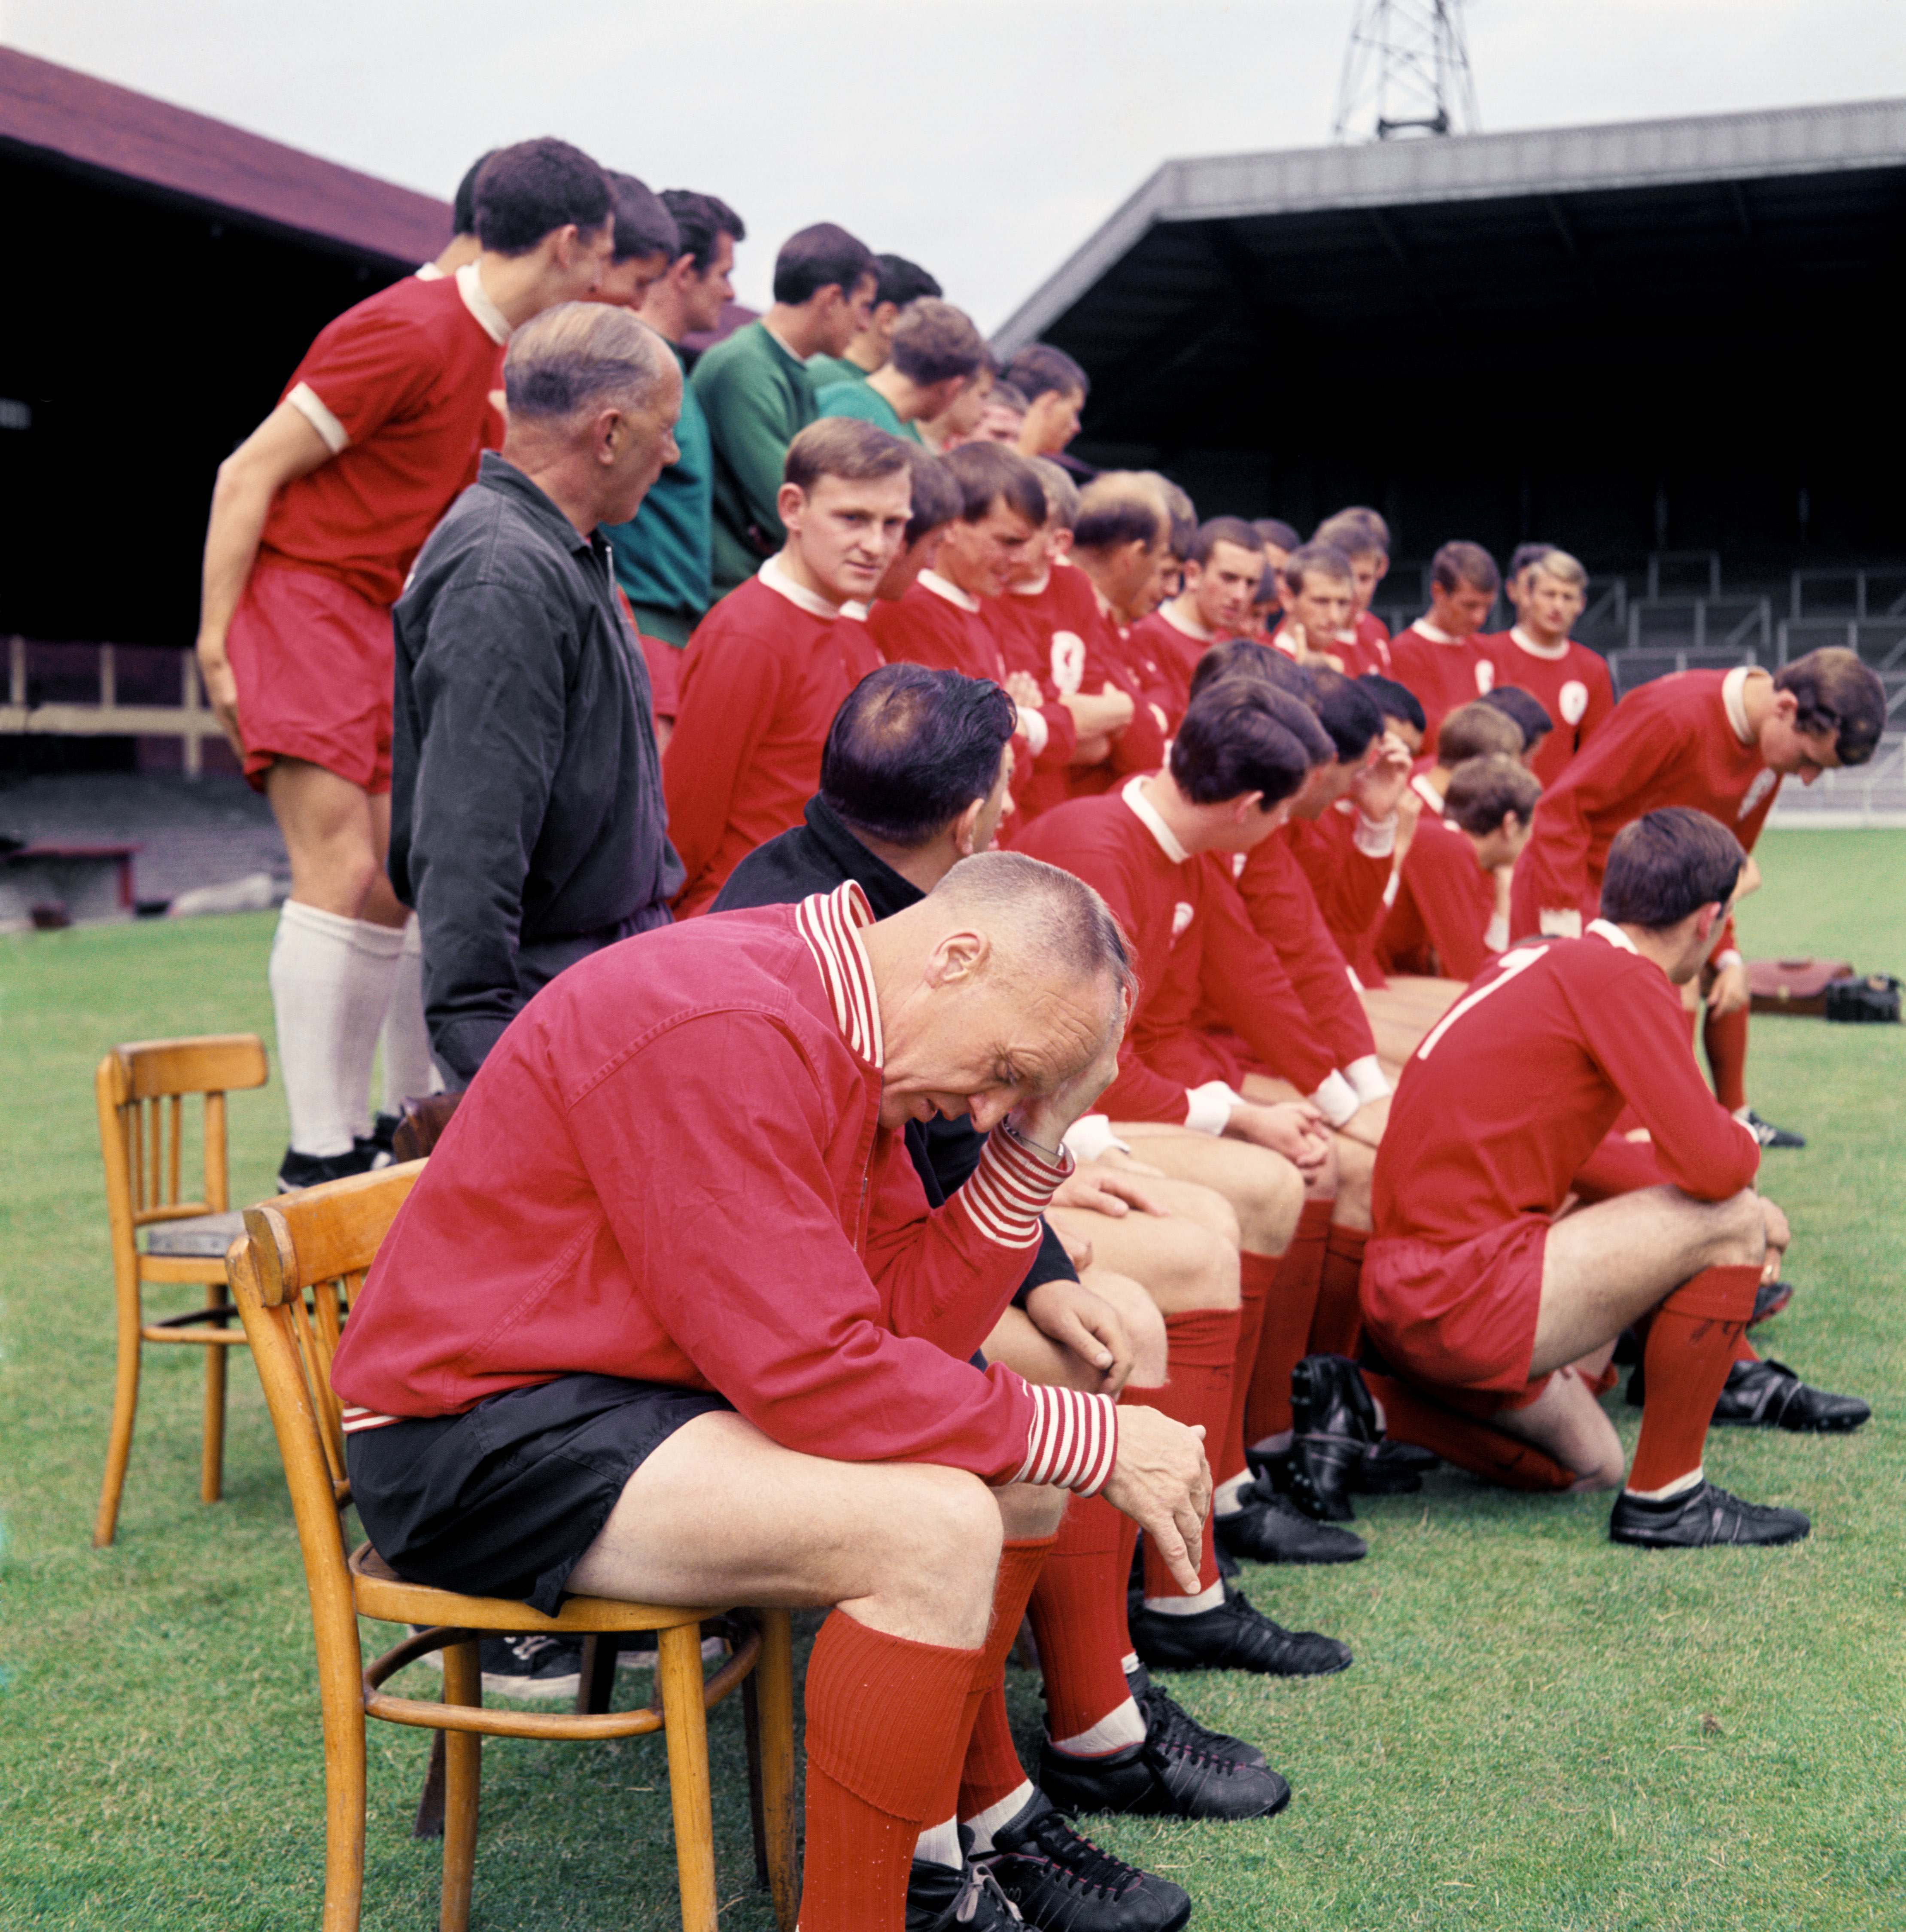 Even Bill Shankly felt the stress of a new season sometimes as the players and coaches gathered for a team group picture. 18/8/1967.